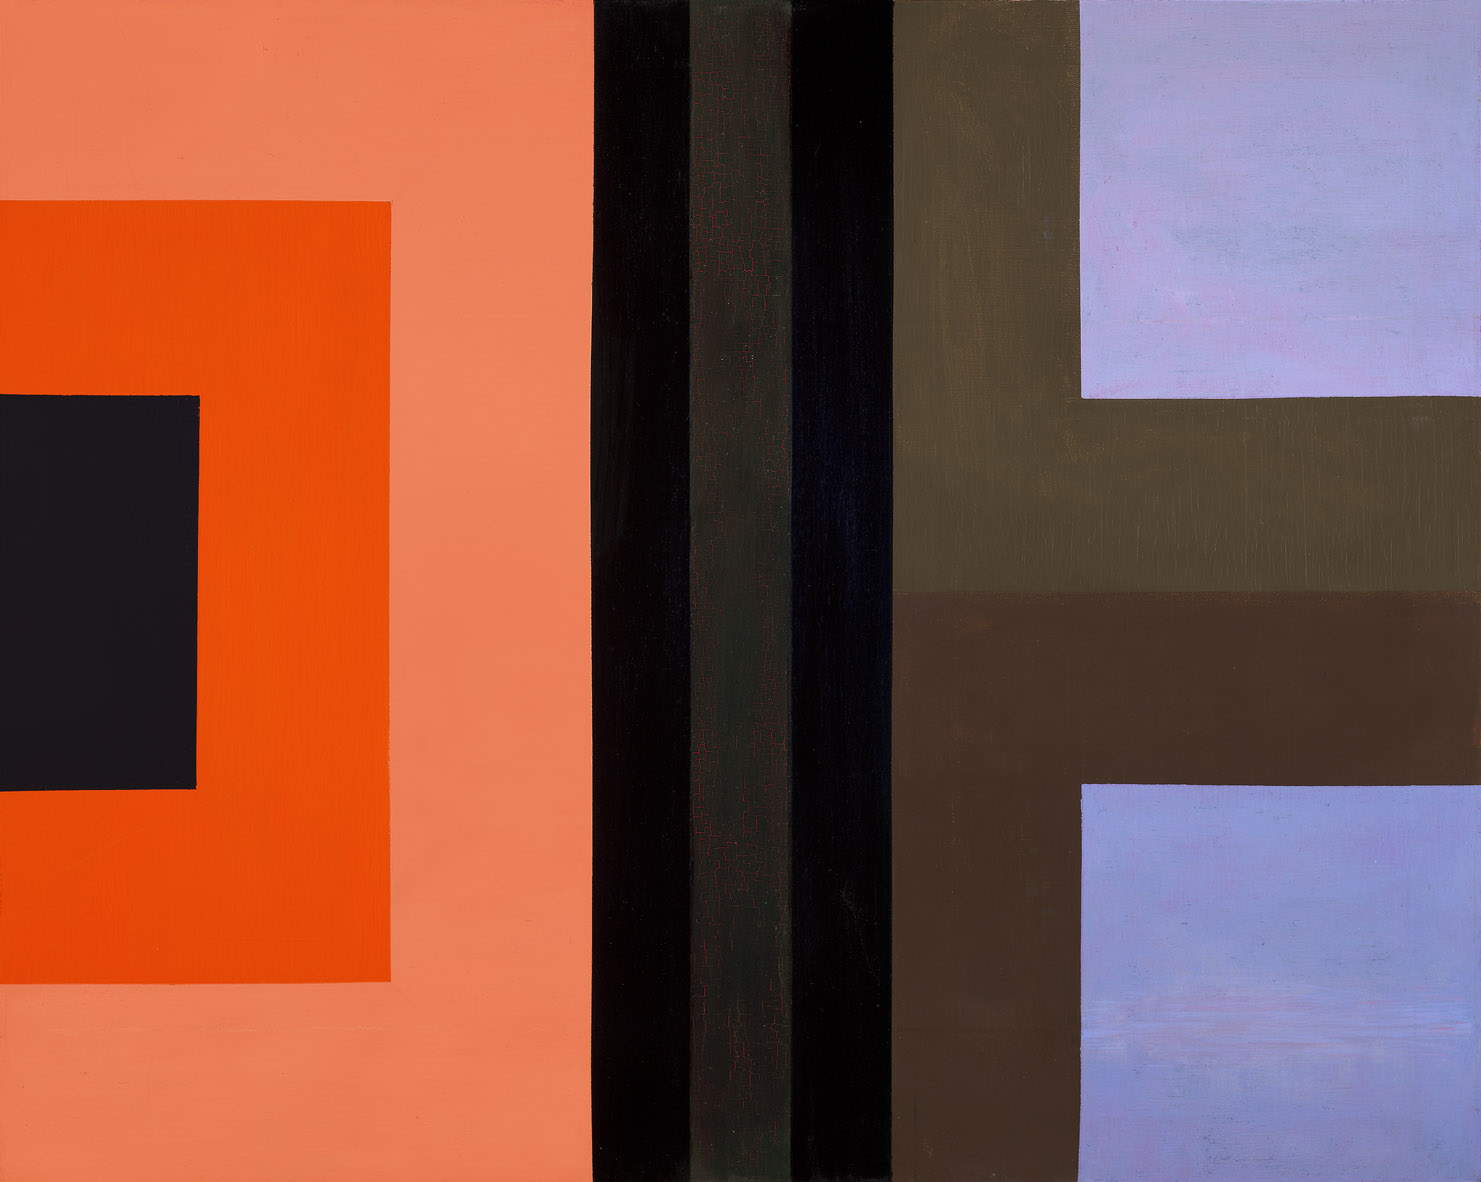 Dichotomic Organization , 1961  oil on canvas 40 x 50 inches; 101.6 x 127 centimeters